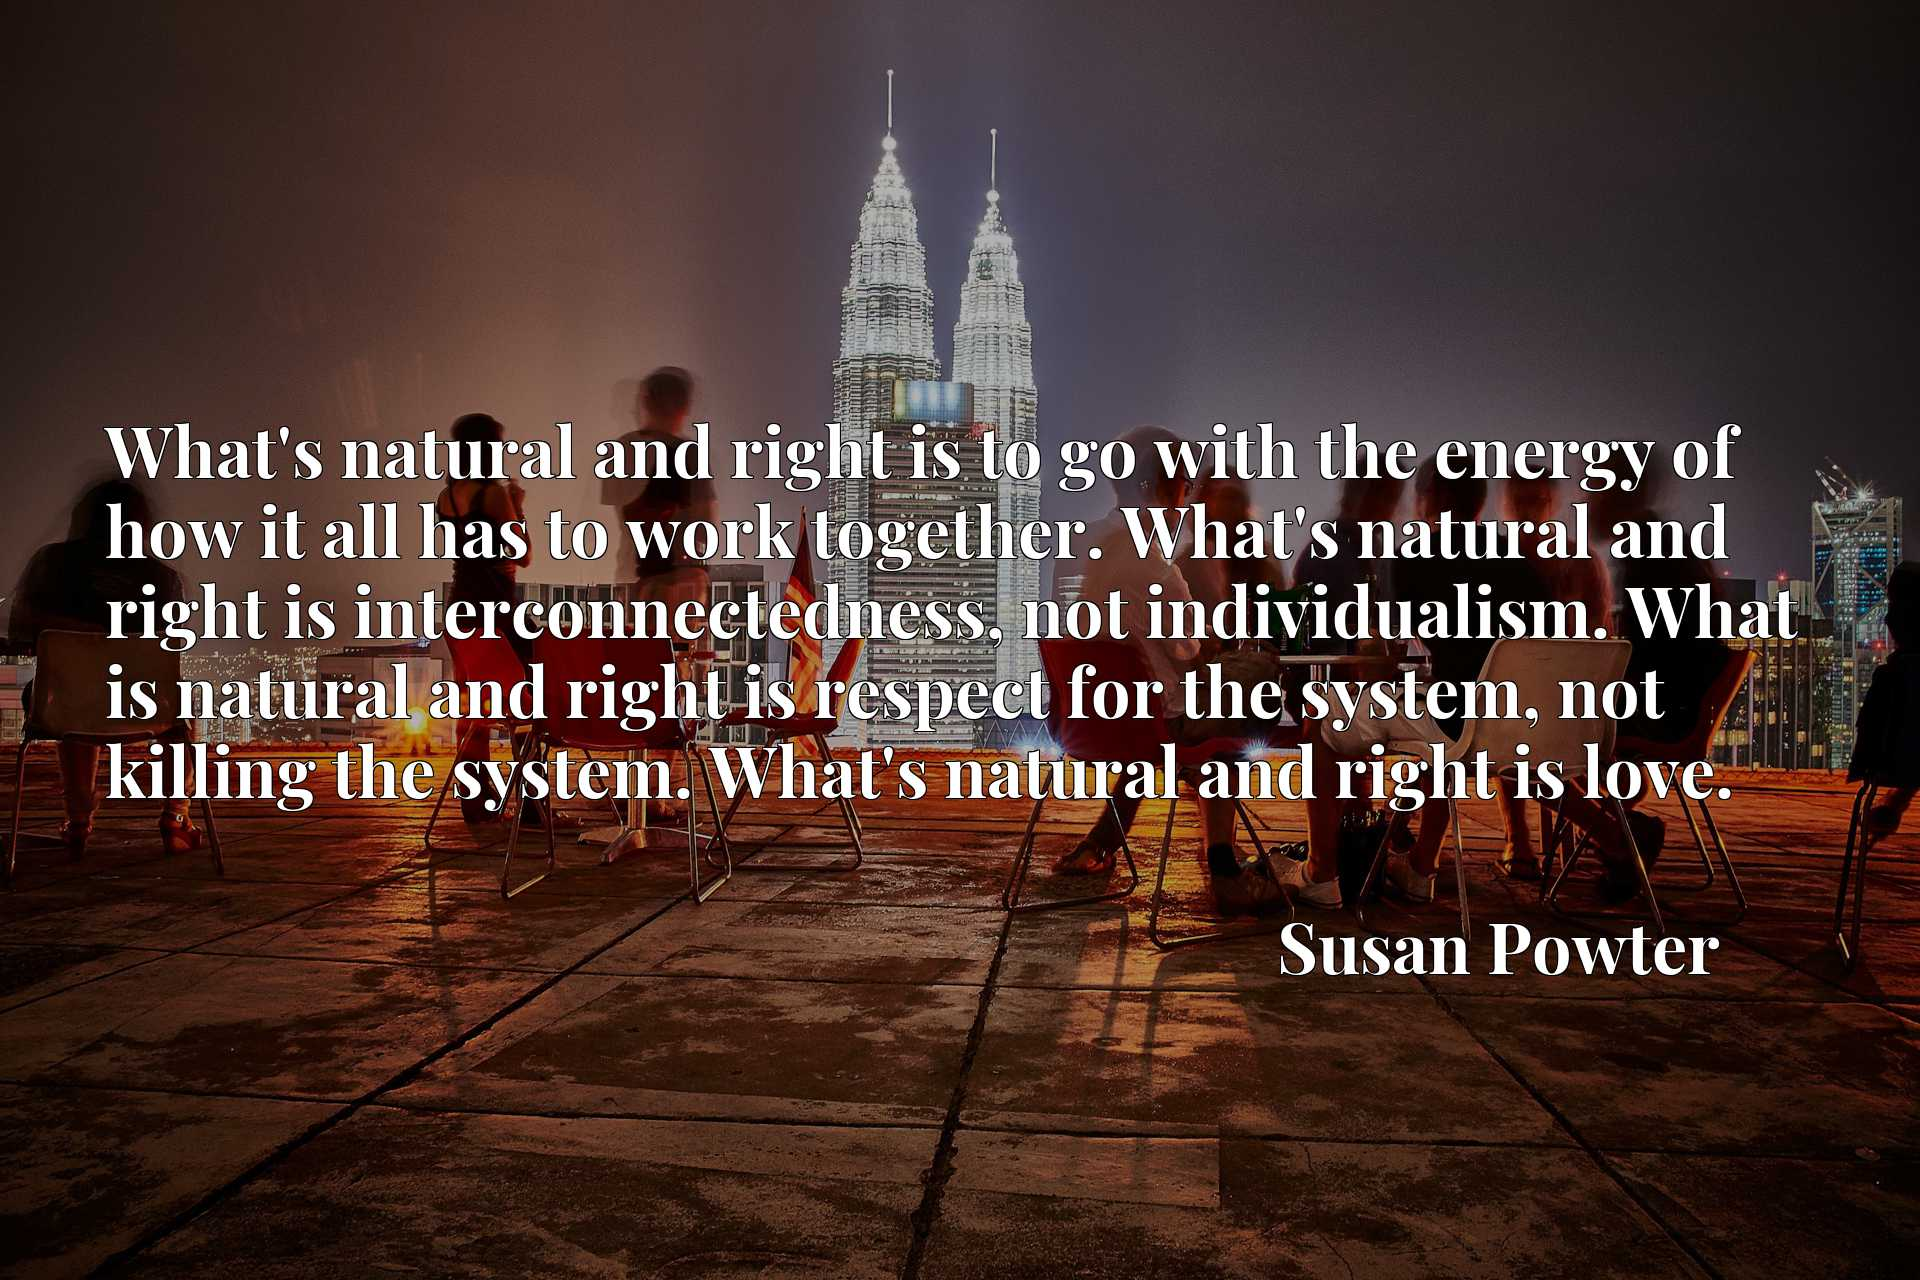 What's natural and right is to go with the energy of how it all has to work together. What's natural and right is interconnectedness, not individualism. What is natural and right is respect for the system, not killing the system. What's natural and right is love.